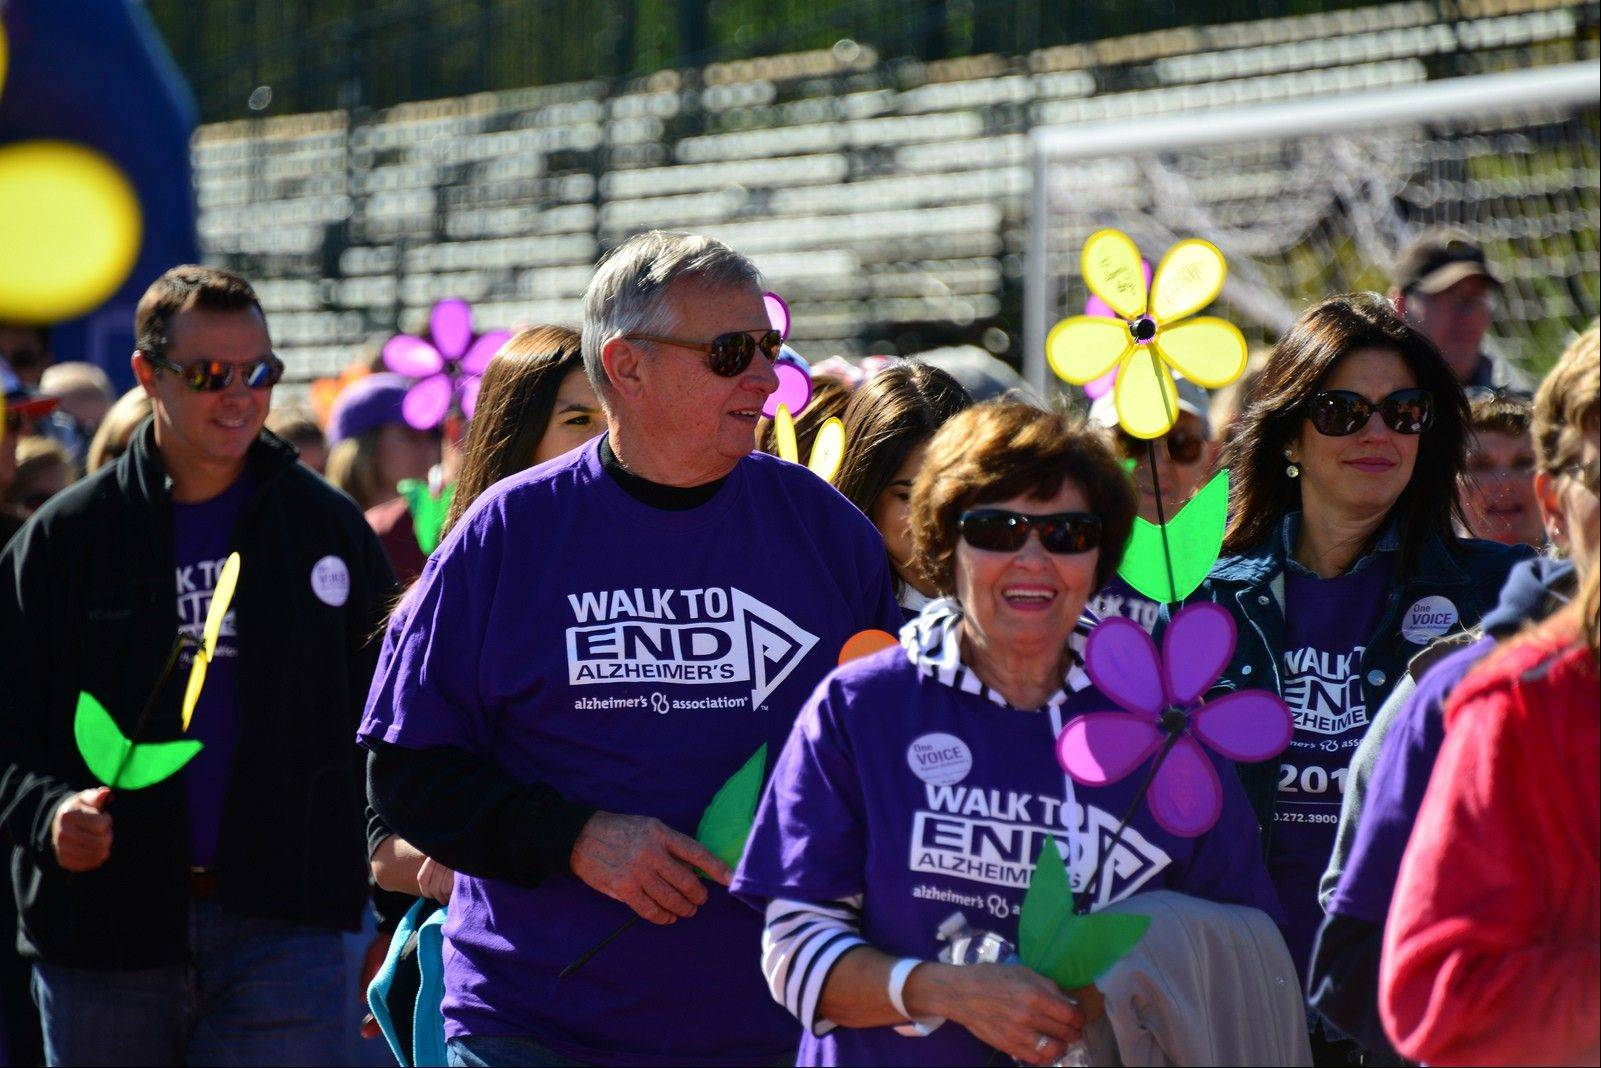 The Walk to End Alzheimer�s raises money to support research and programs through the Alzheimer�s Association.